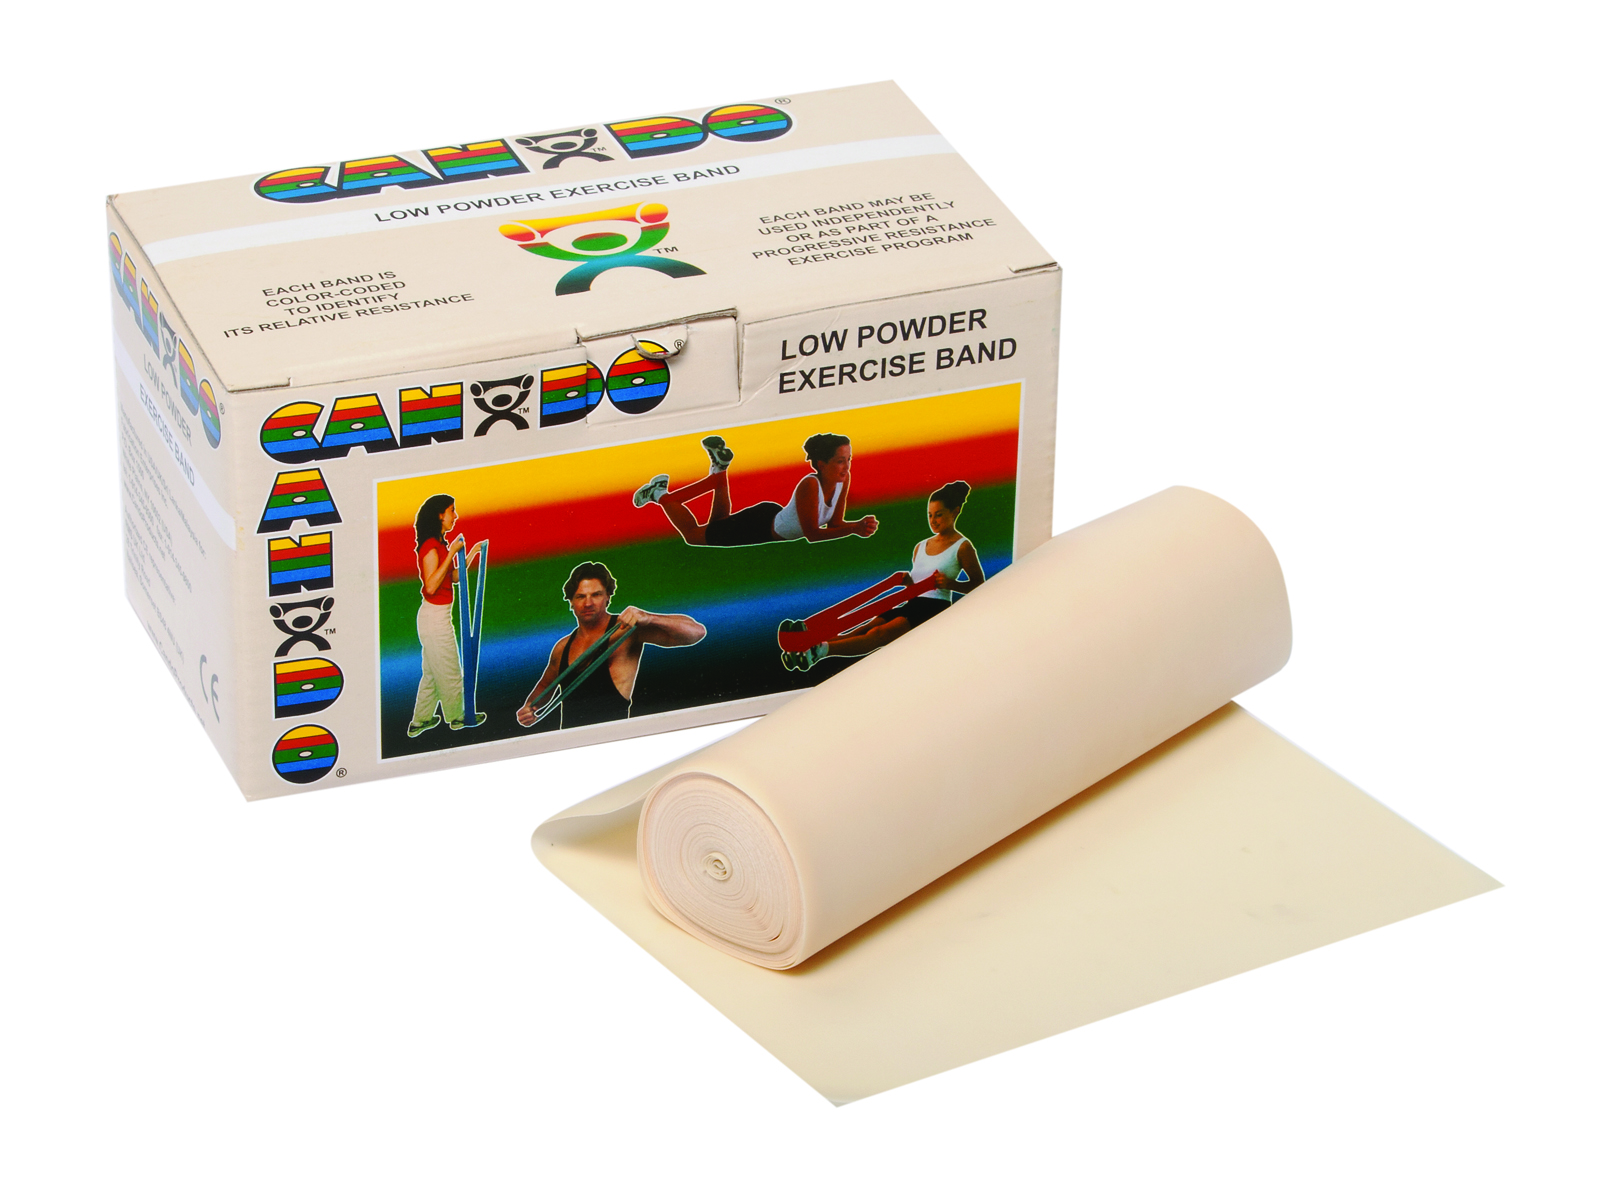 CanDo Low Powder Exercise Band Rolls